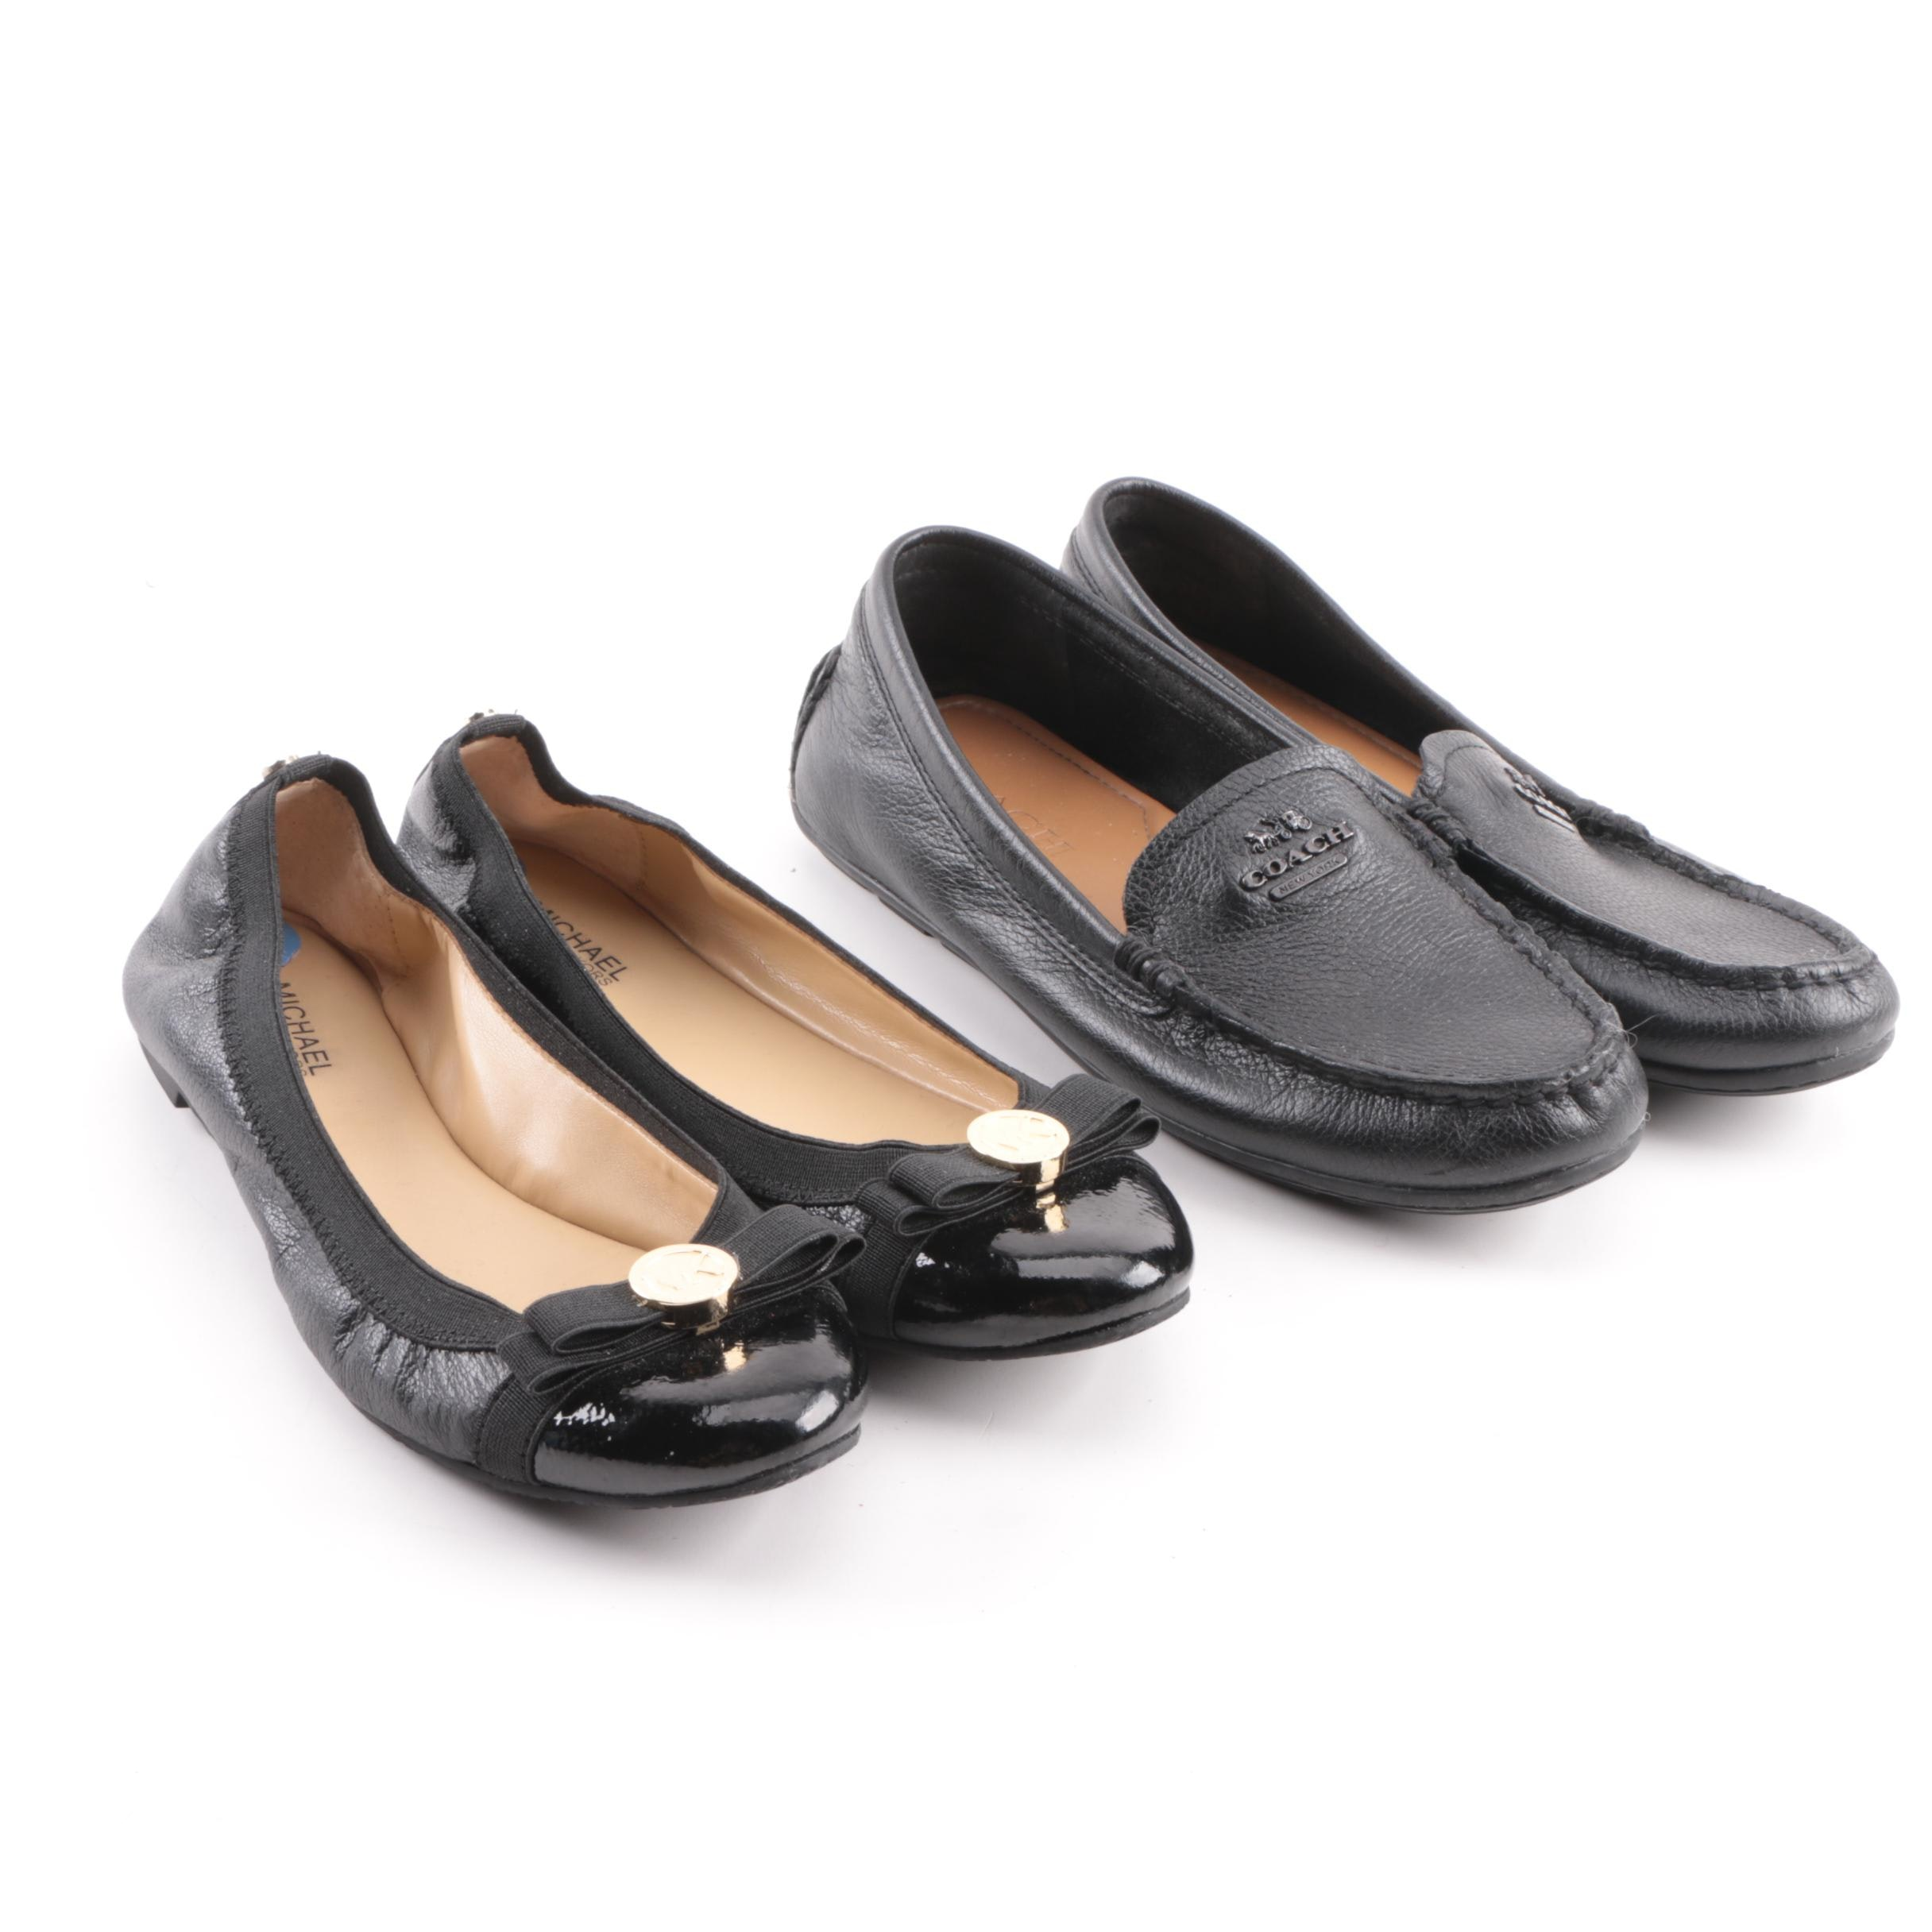 Women's Coach Black Leather Loafers and MICHAEL Michael Kors Black Leather Flats